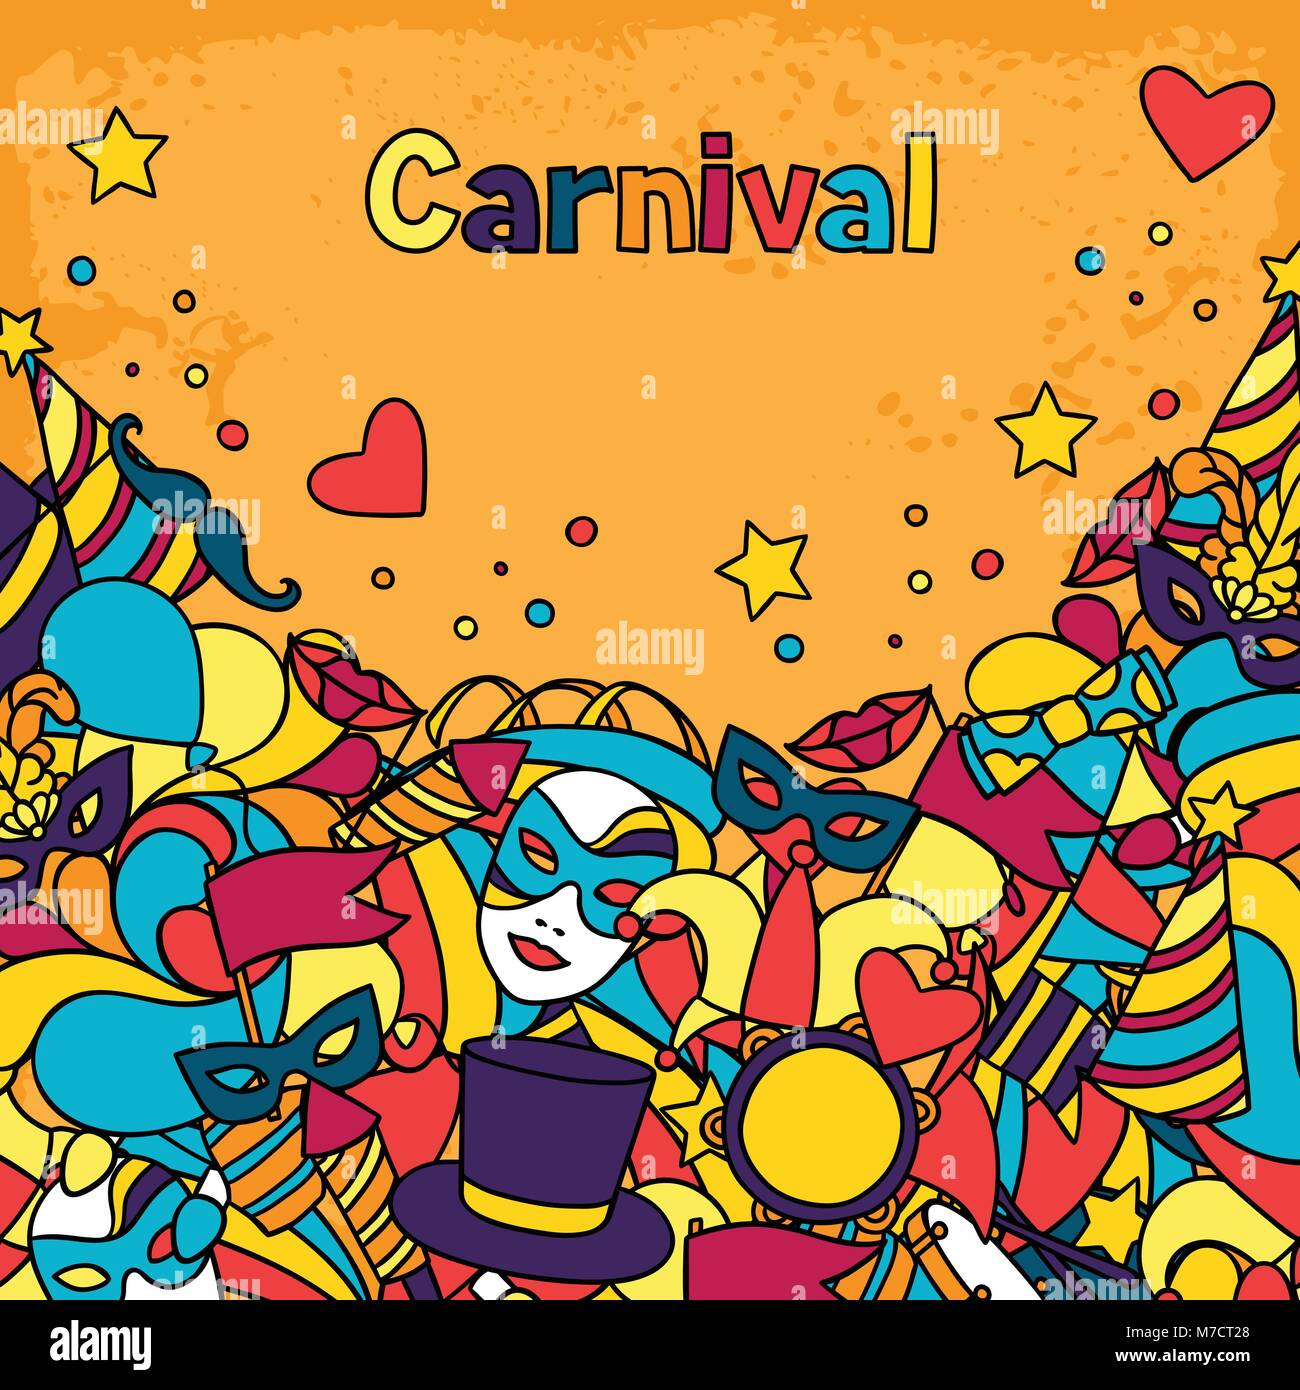 Carnival show background with doodle icons and objects Stock Vector